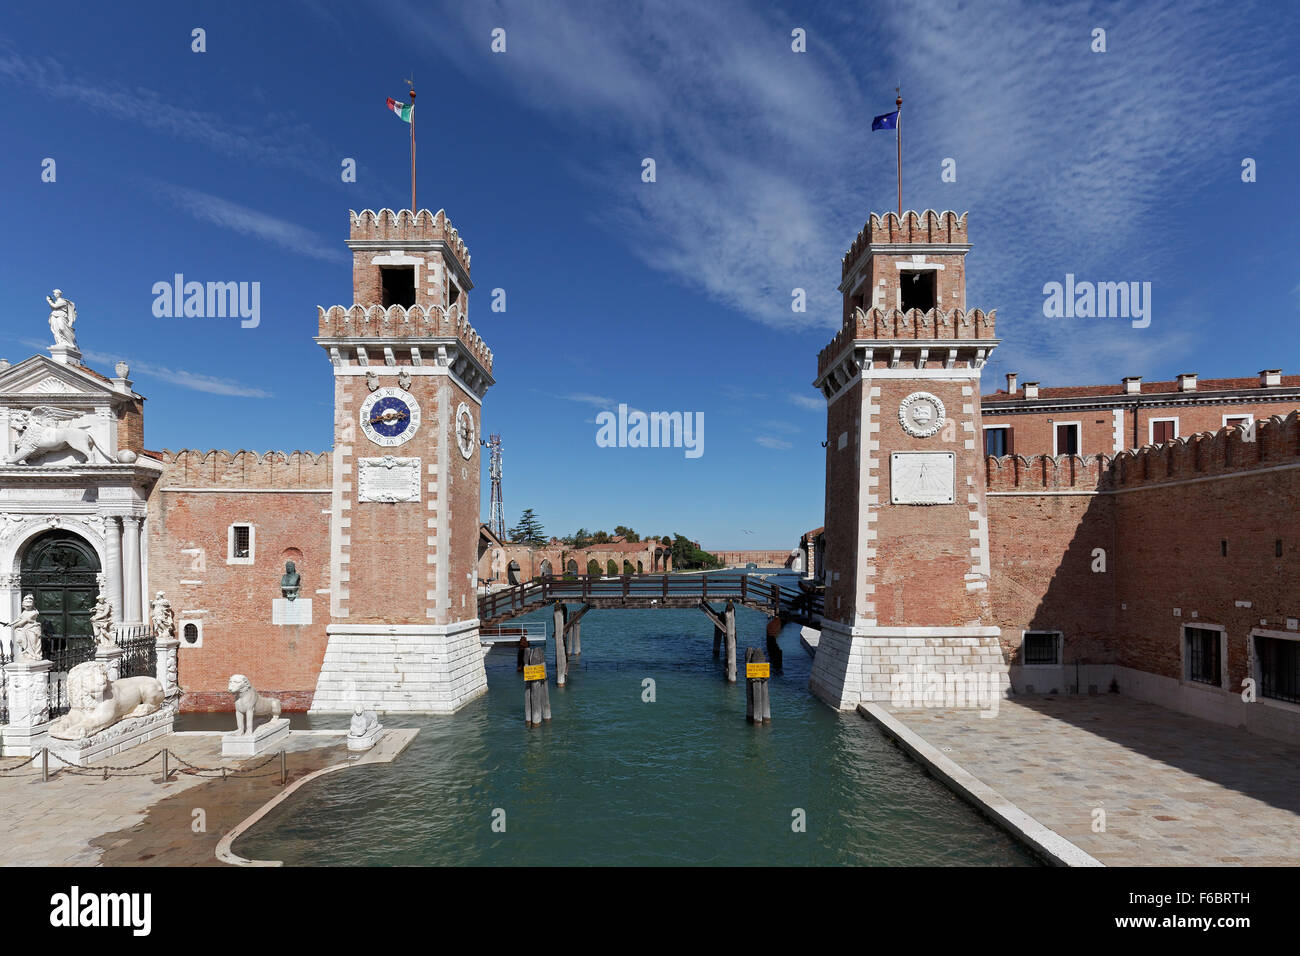 Arsenal water gate and towers, former naval base of Venetian Republic, Castello, Venice, Veneto, Italy - Stock Image